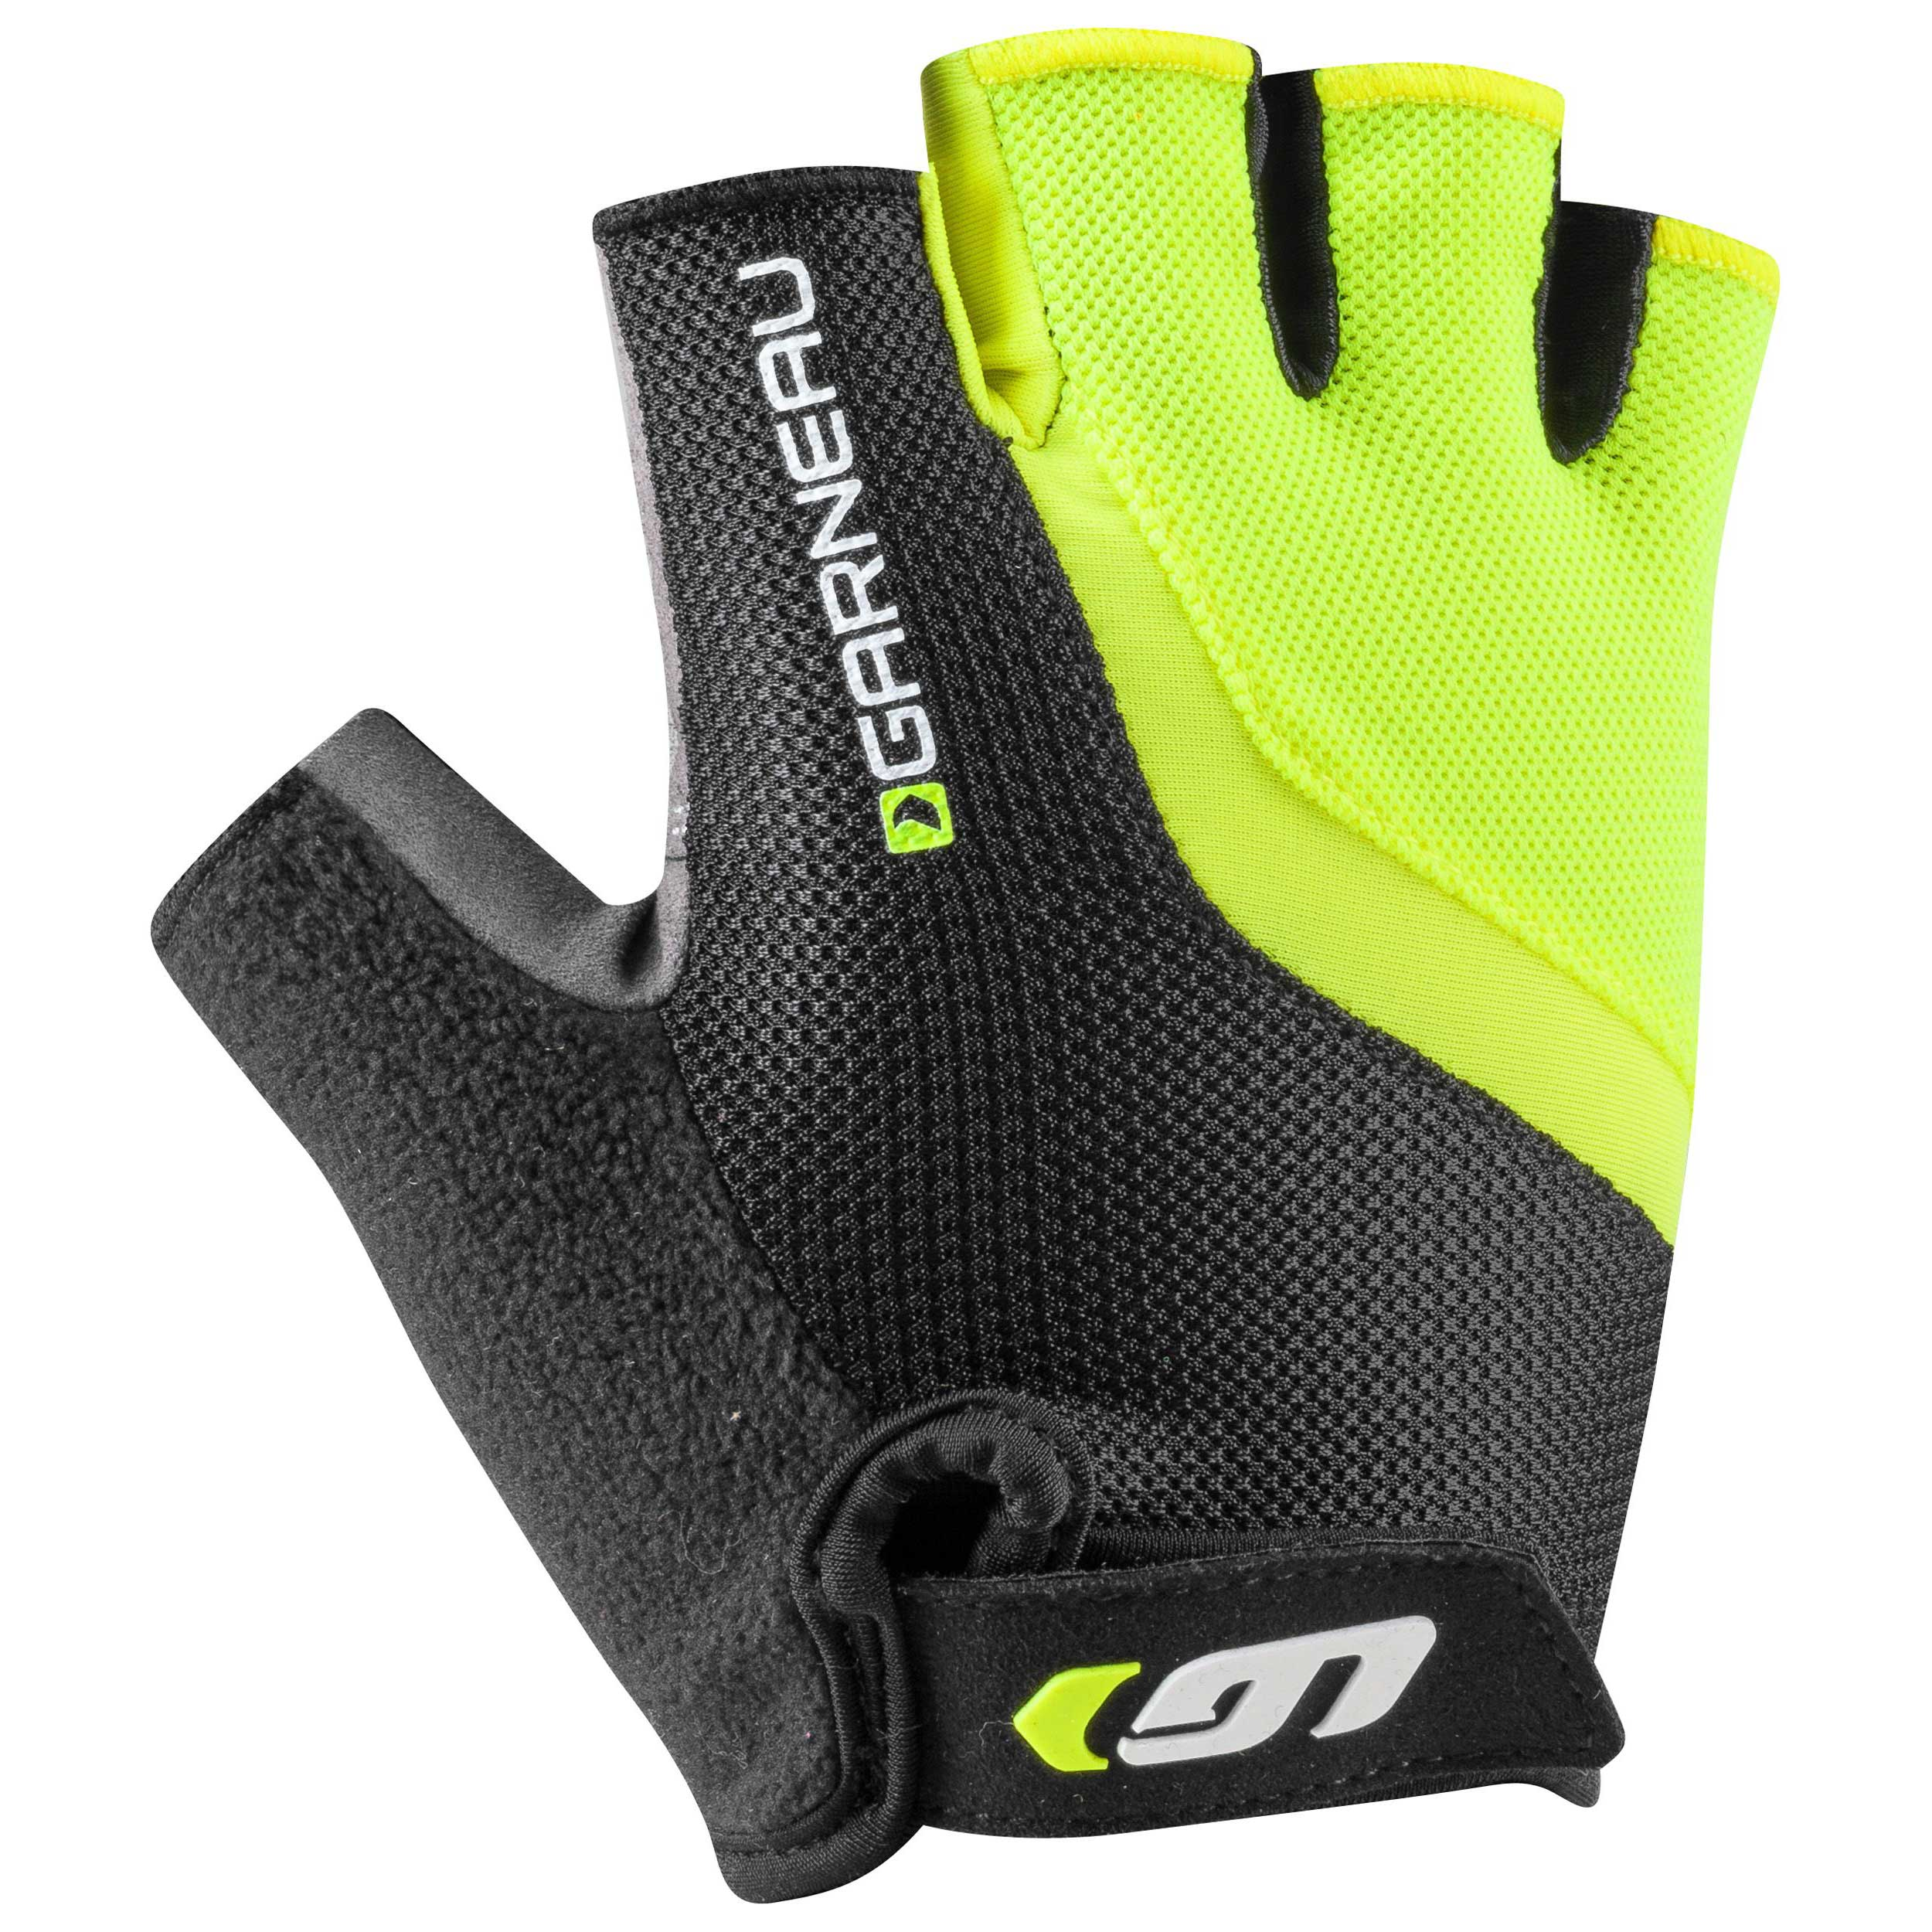 Louis Garneau Biogel RX-V Cycling Gloves